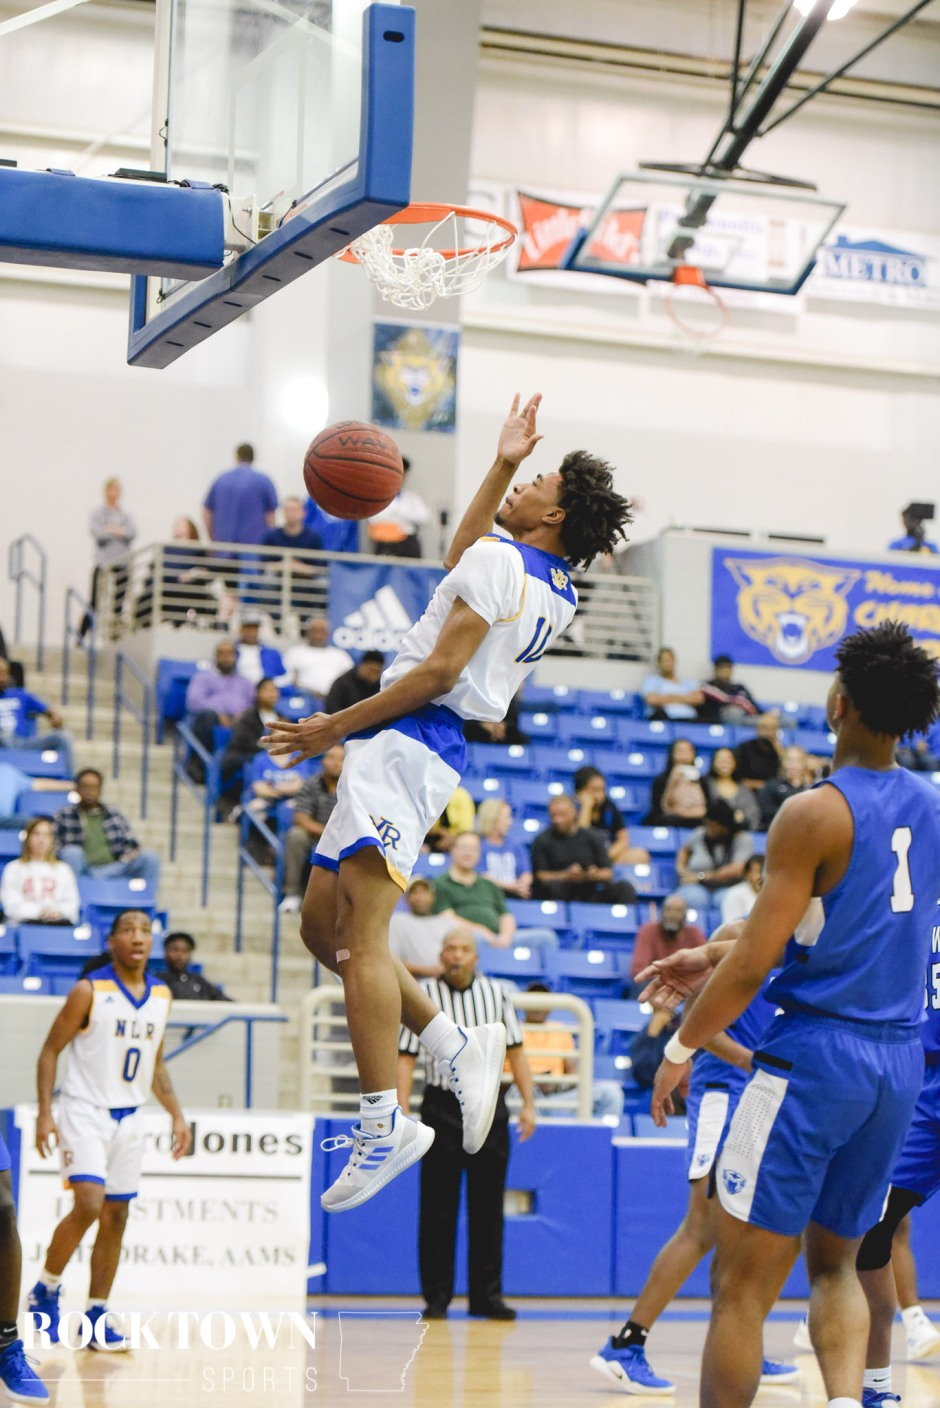 Conway_NLR_bball19(i)-59